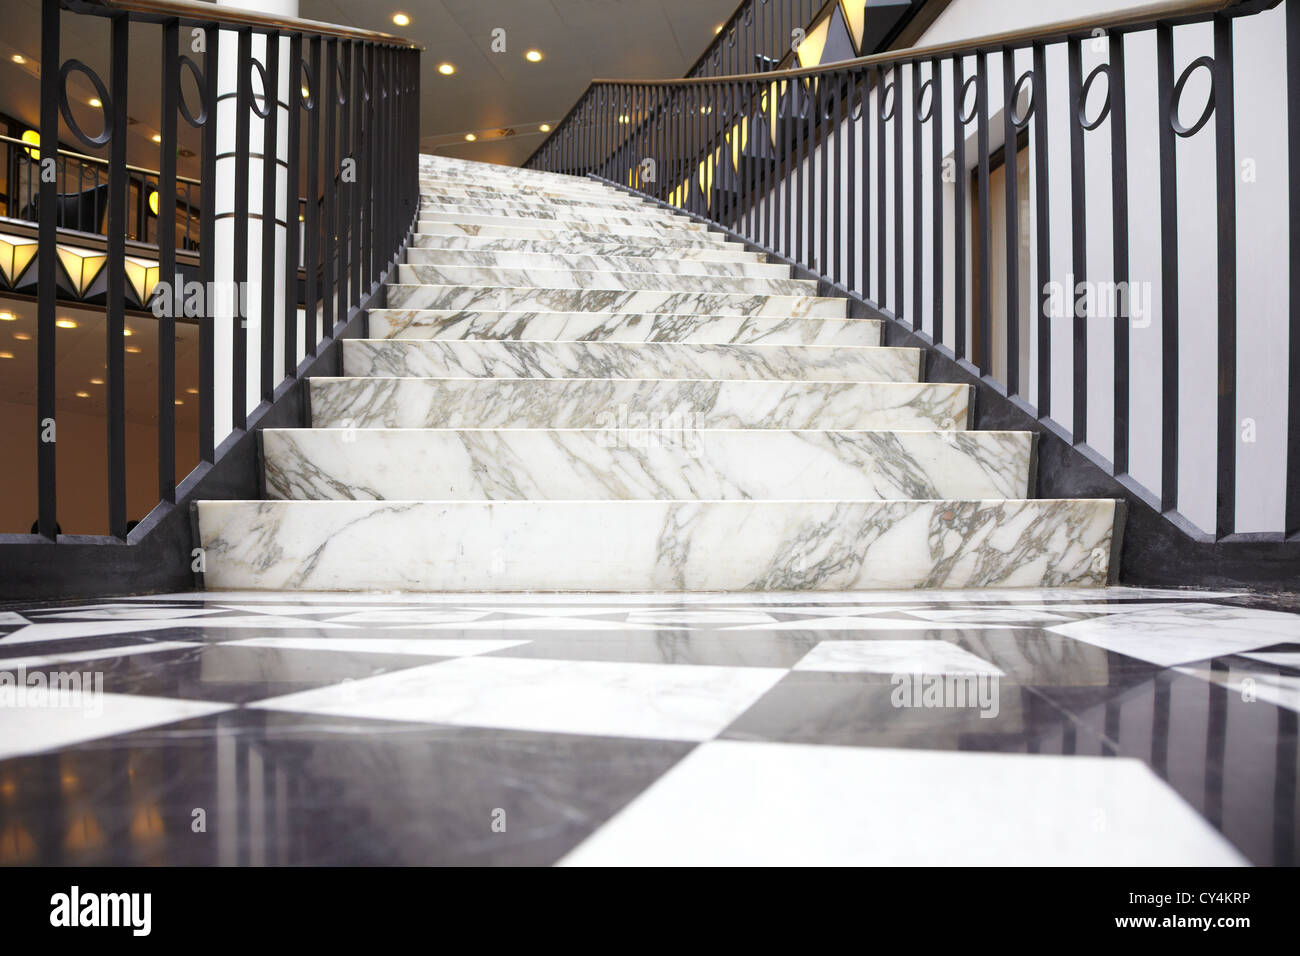 Marble Staircase In Luxury Interior   Stock Image